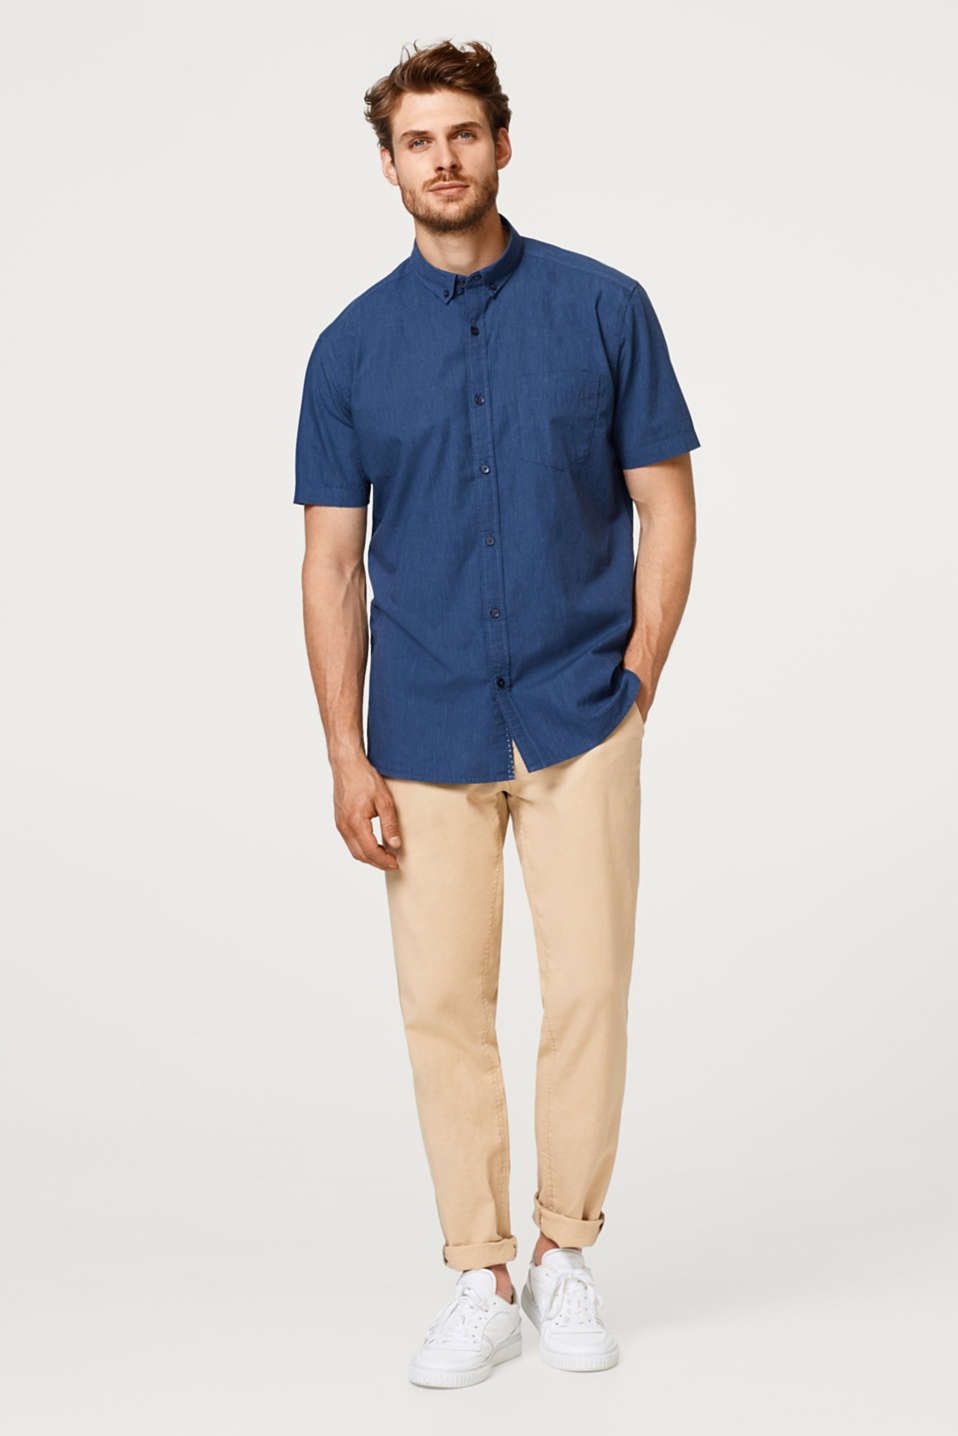 Short sleeve cotton shirt with a button-down collar